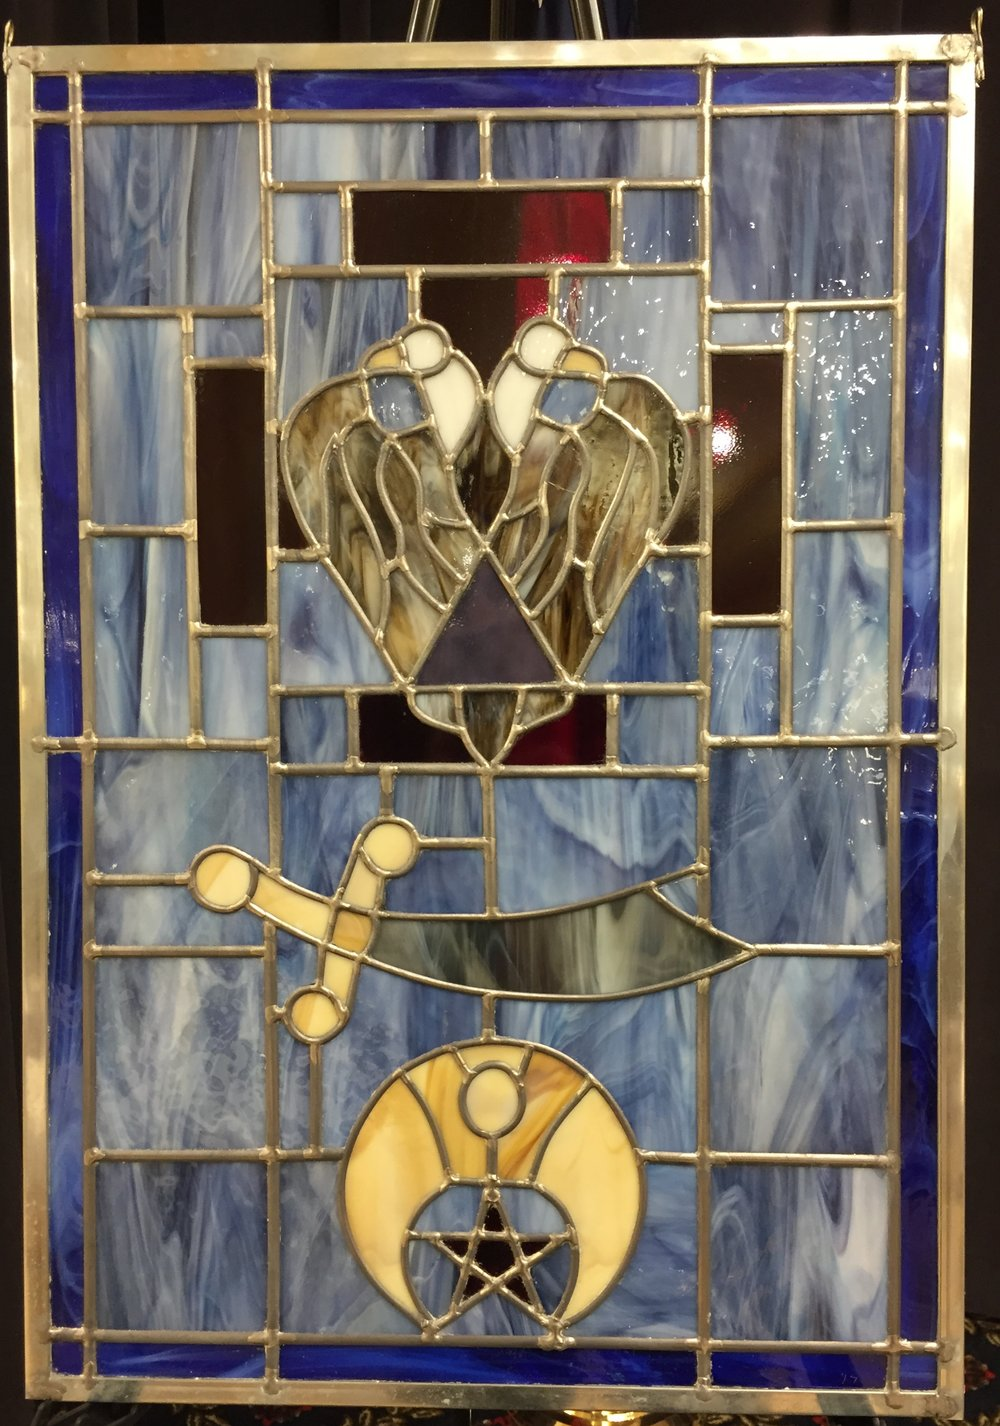 Beautiful stained glass window made by Scott Oglesby, 33° in honor of Jerome Given, 33° and reflecting his lifelong, active Scottish Rite and Shrine membership.